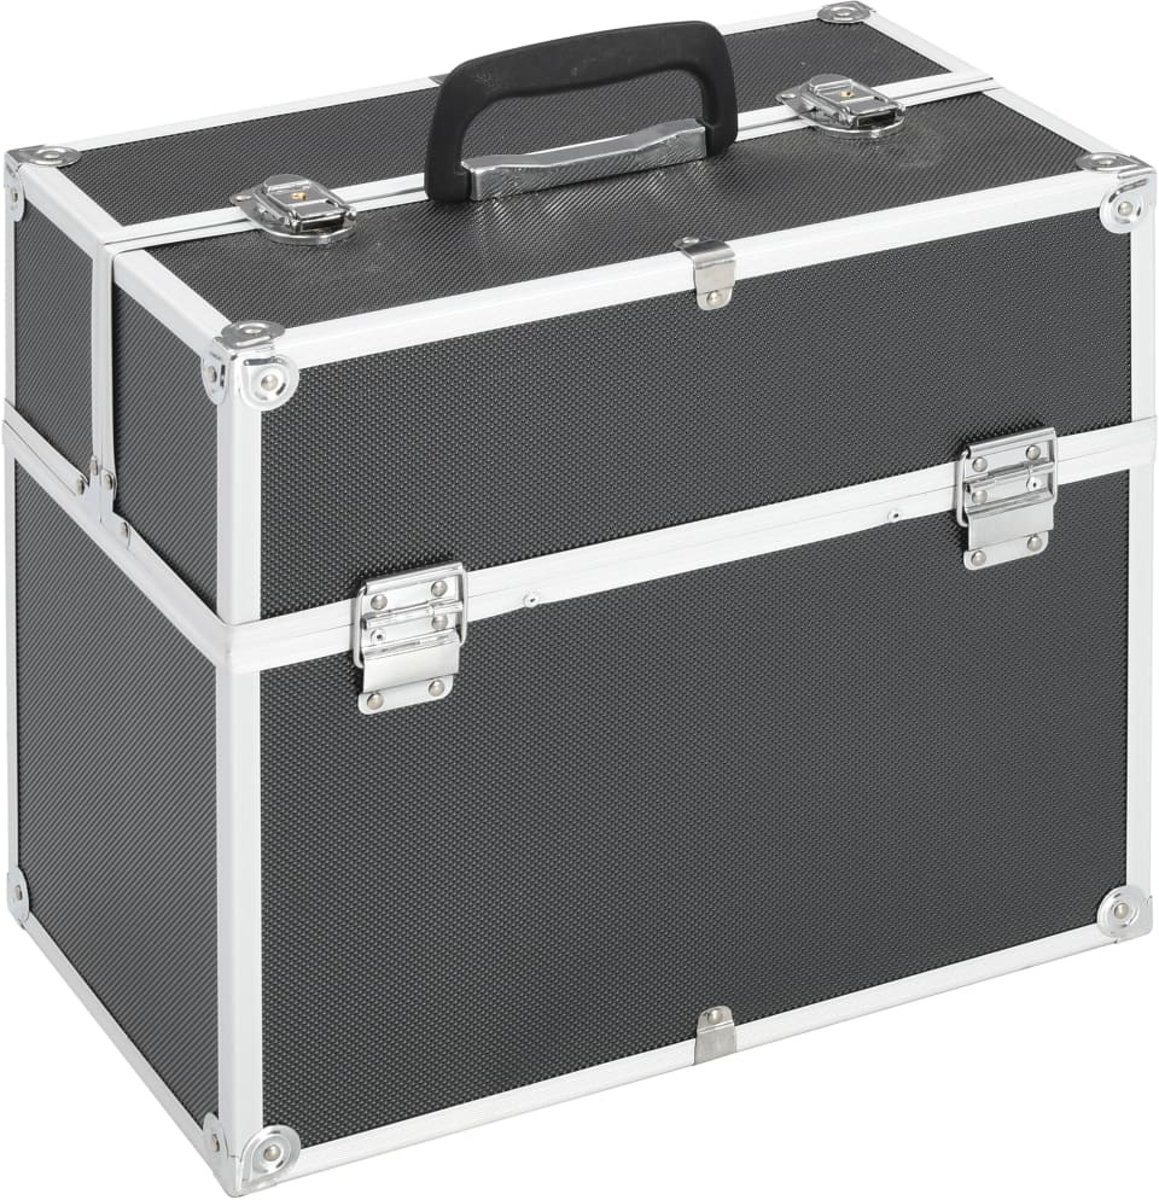 Make-up koffer 37x24x35cm aluminium zwart - Visagie koffer - Cosmetica koffer - Beauty case - Nagelstyliste koffer - make up case